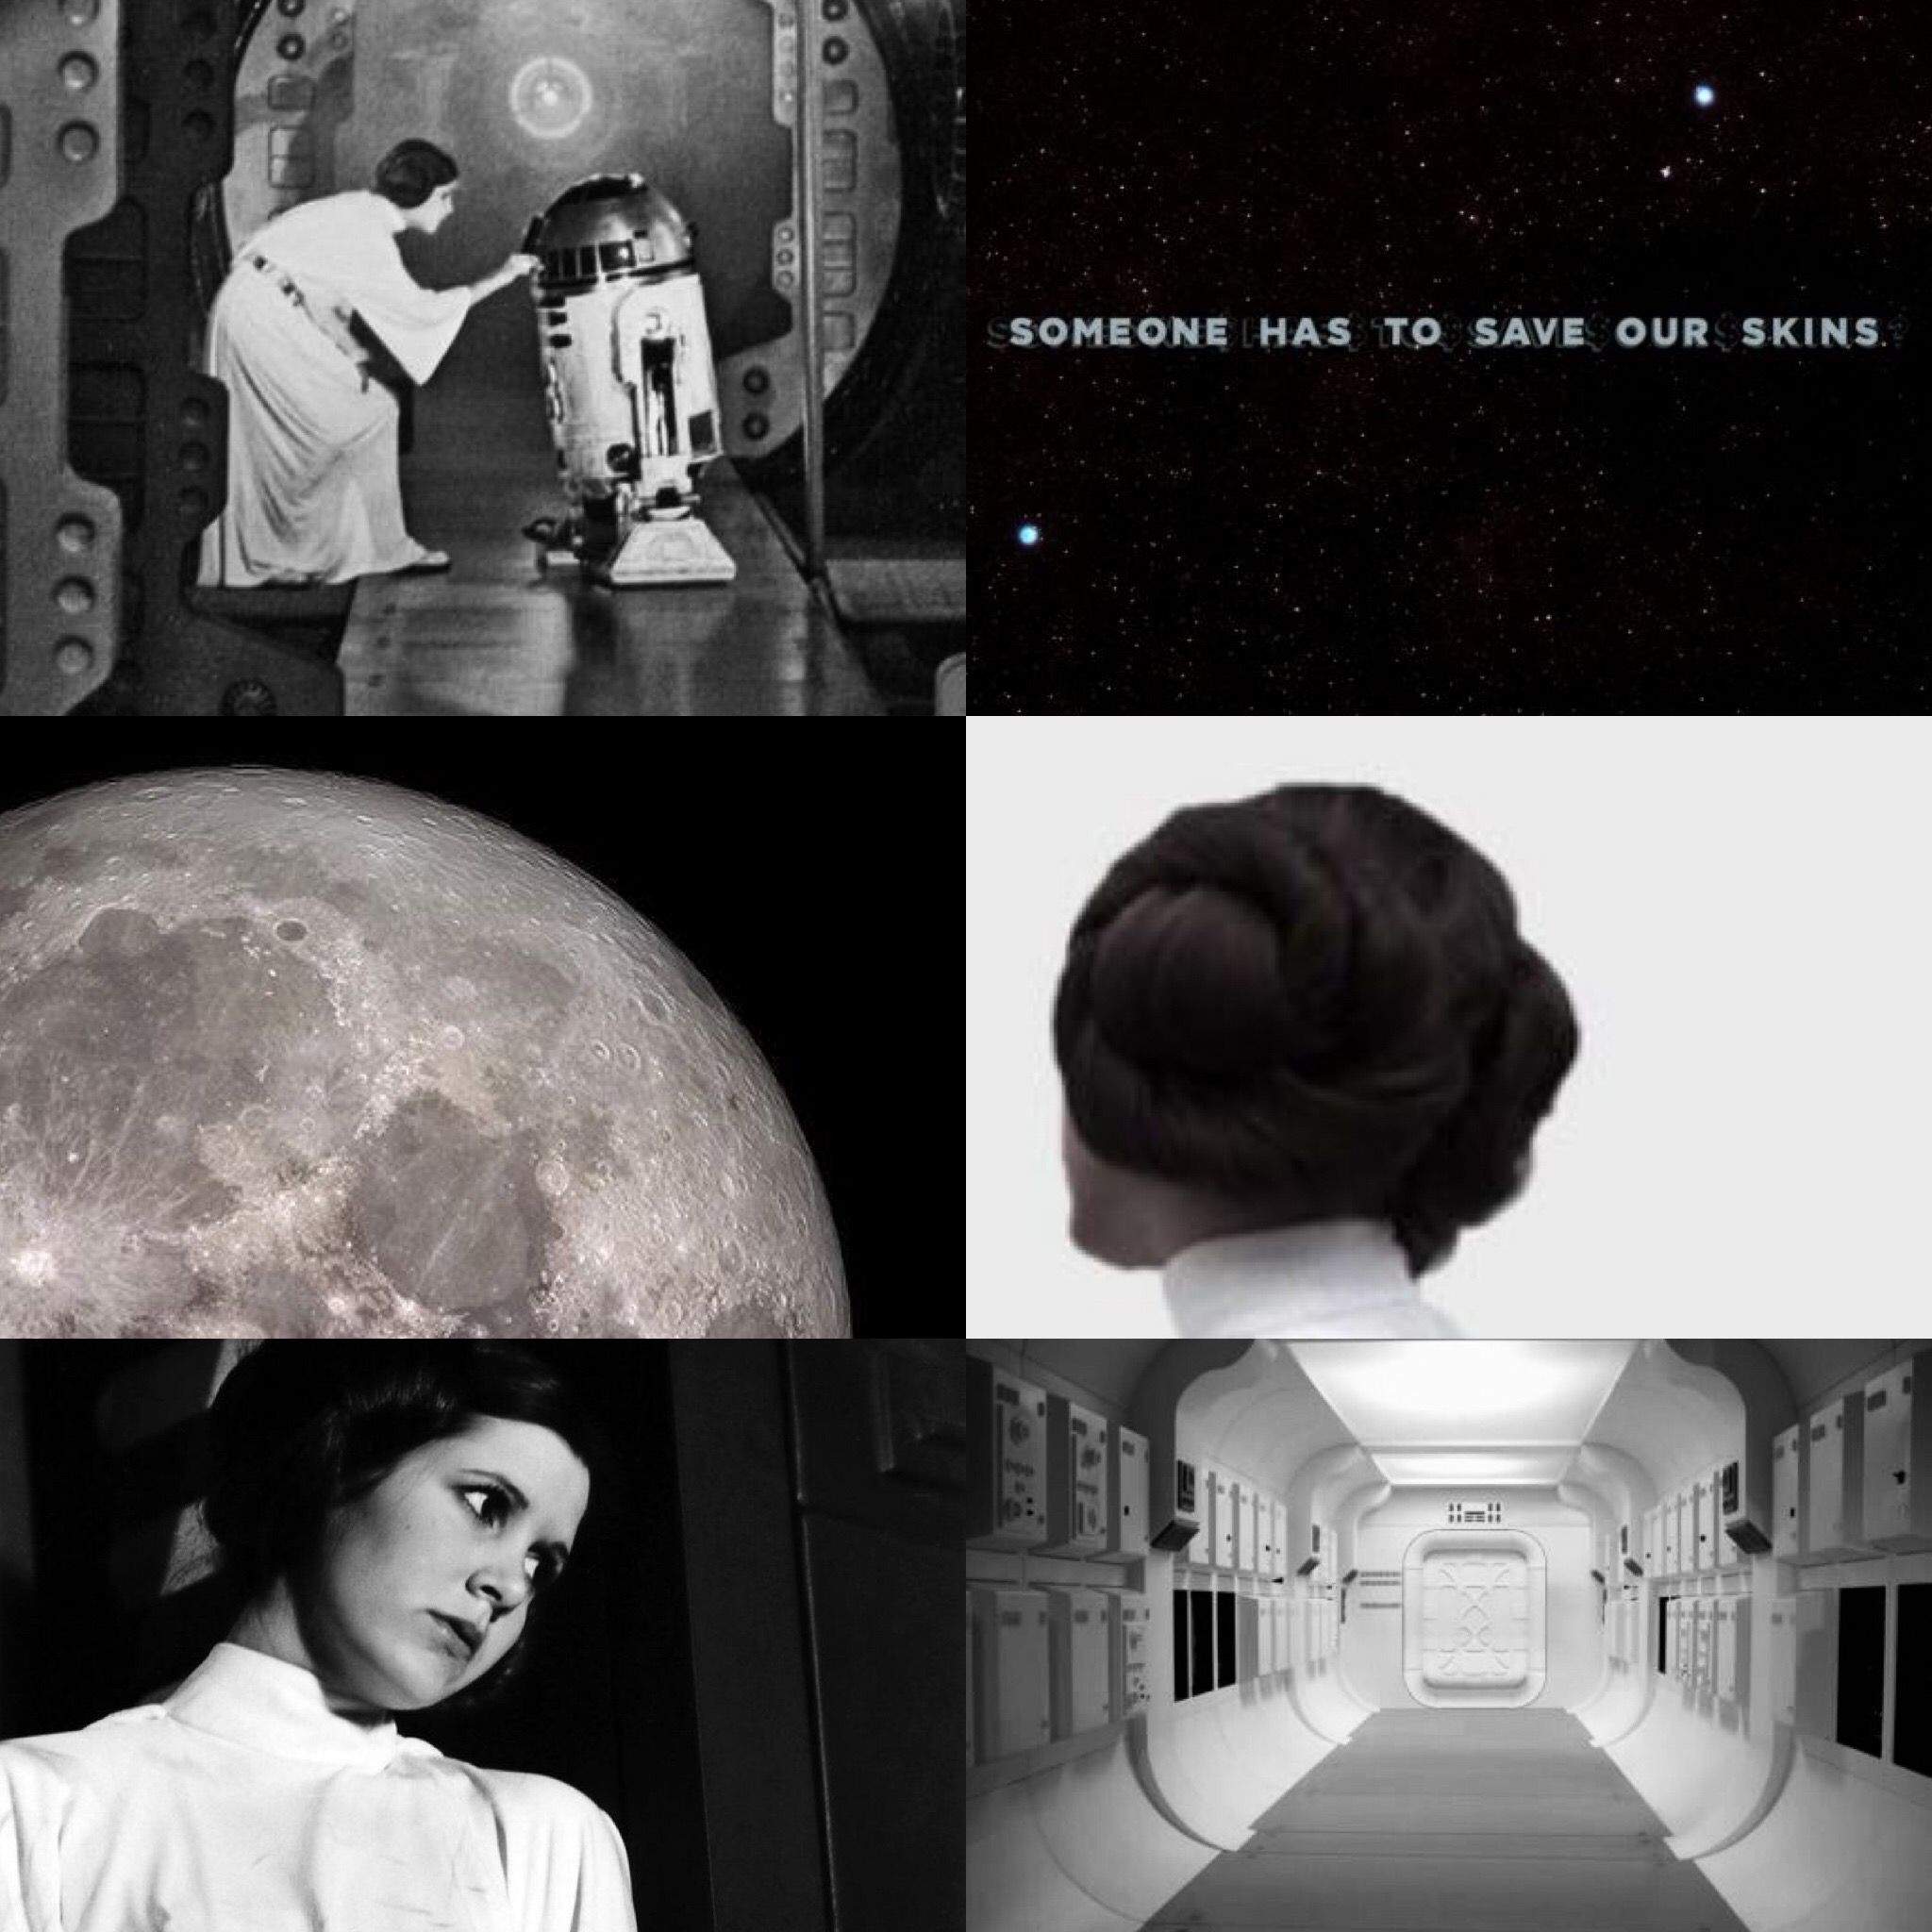 Pin On Star Wars Aesthetic